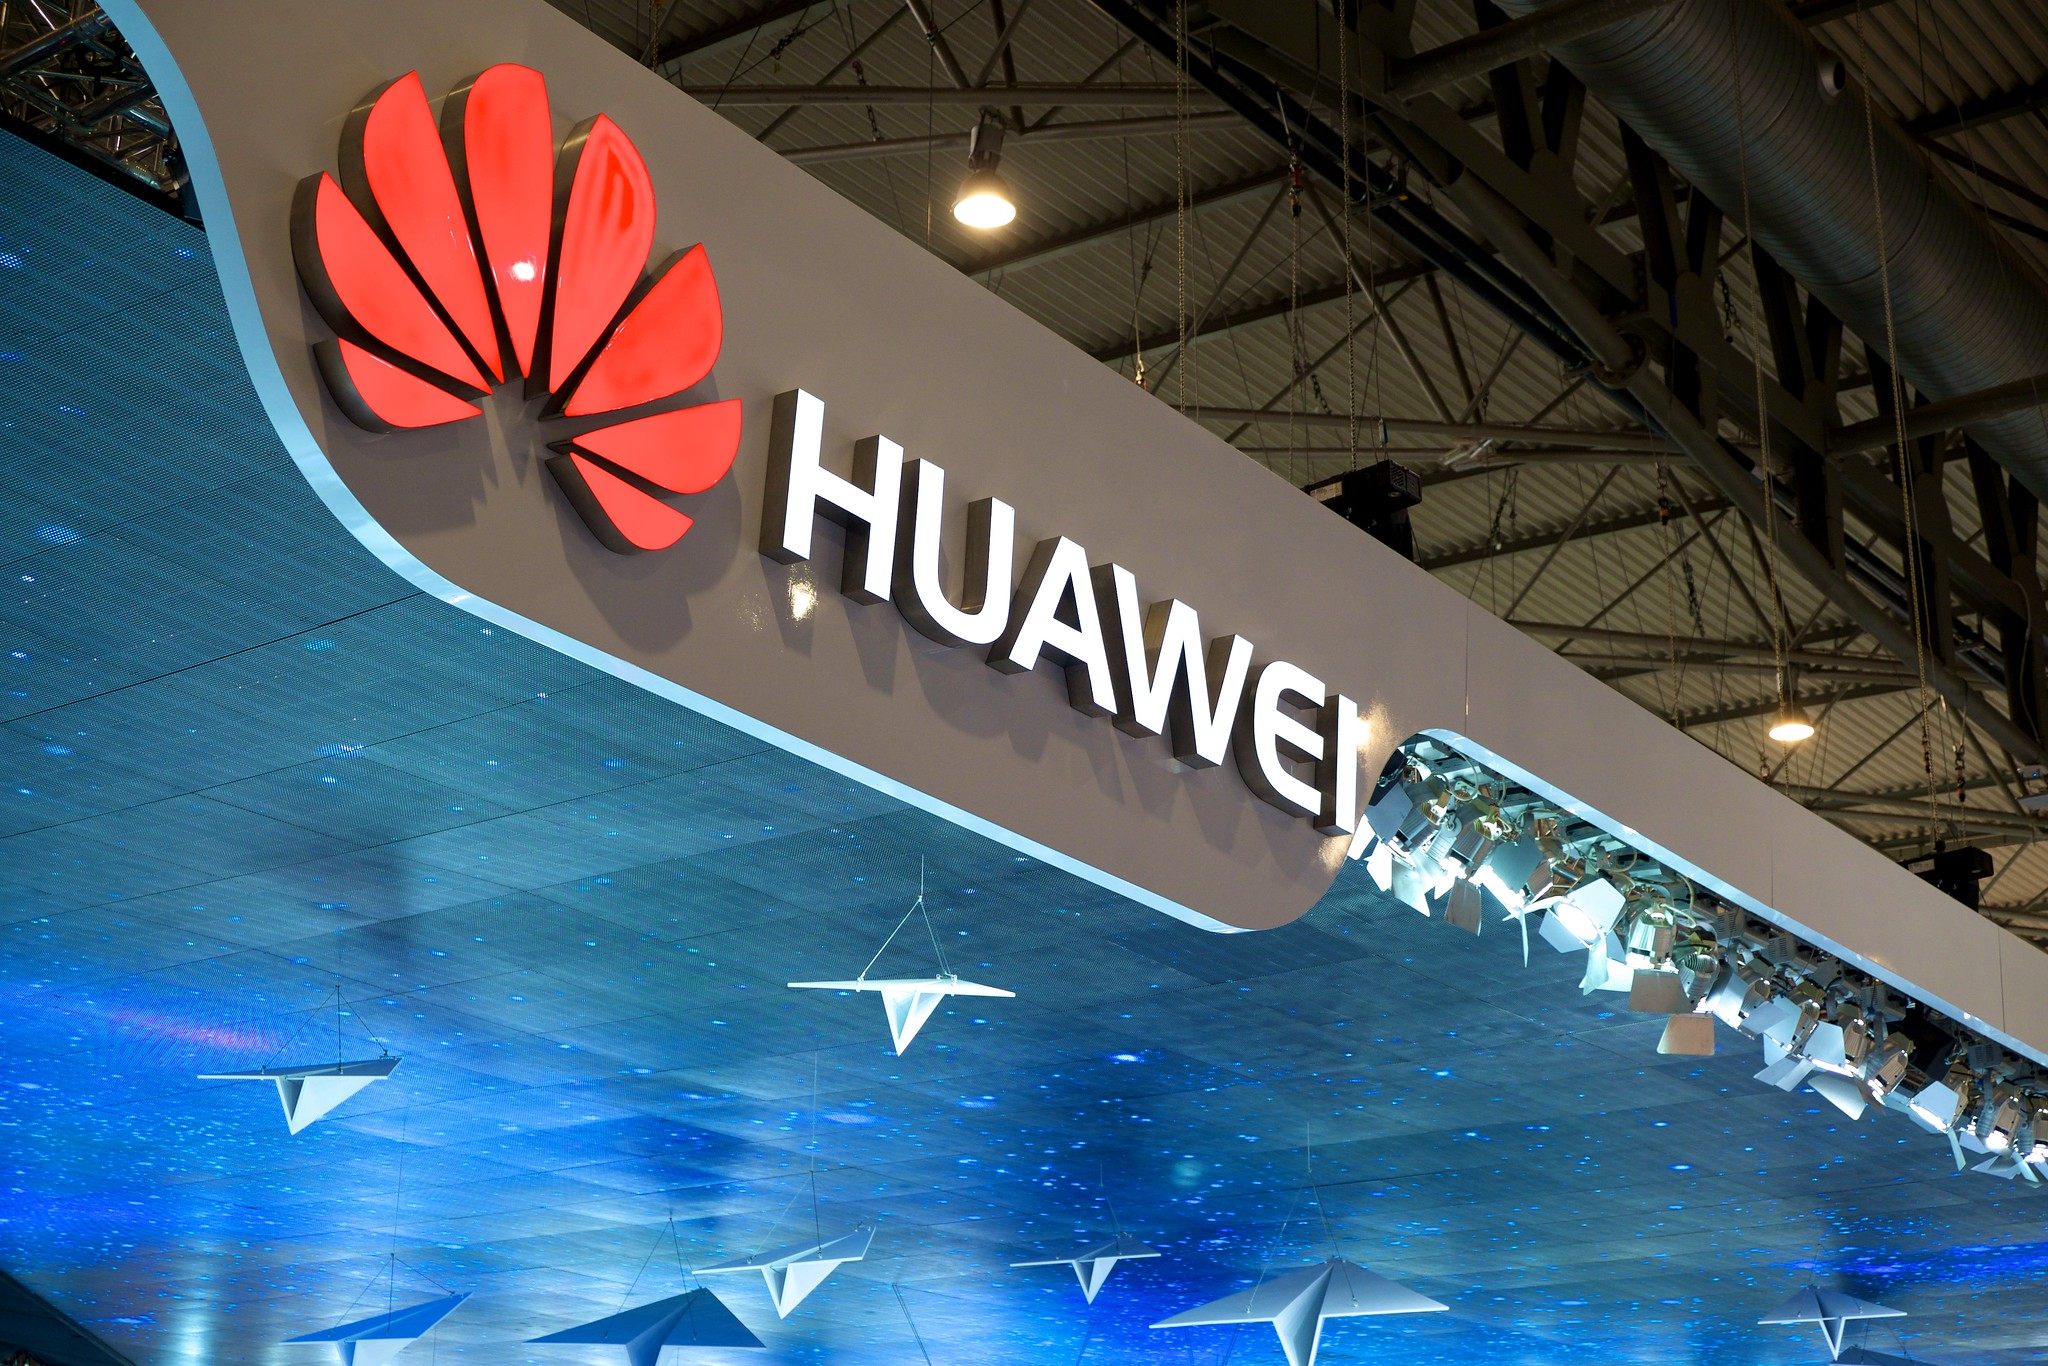 U.S. government considers blocking Huawei's access to U.S. chip technology